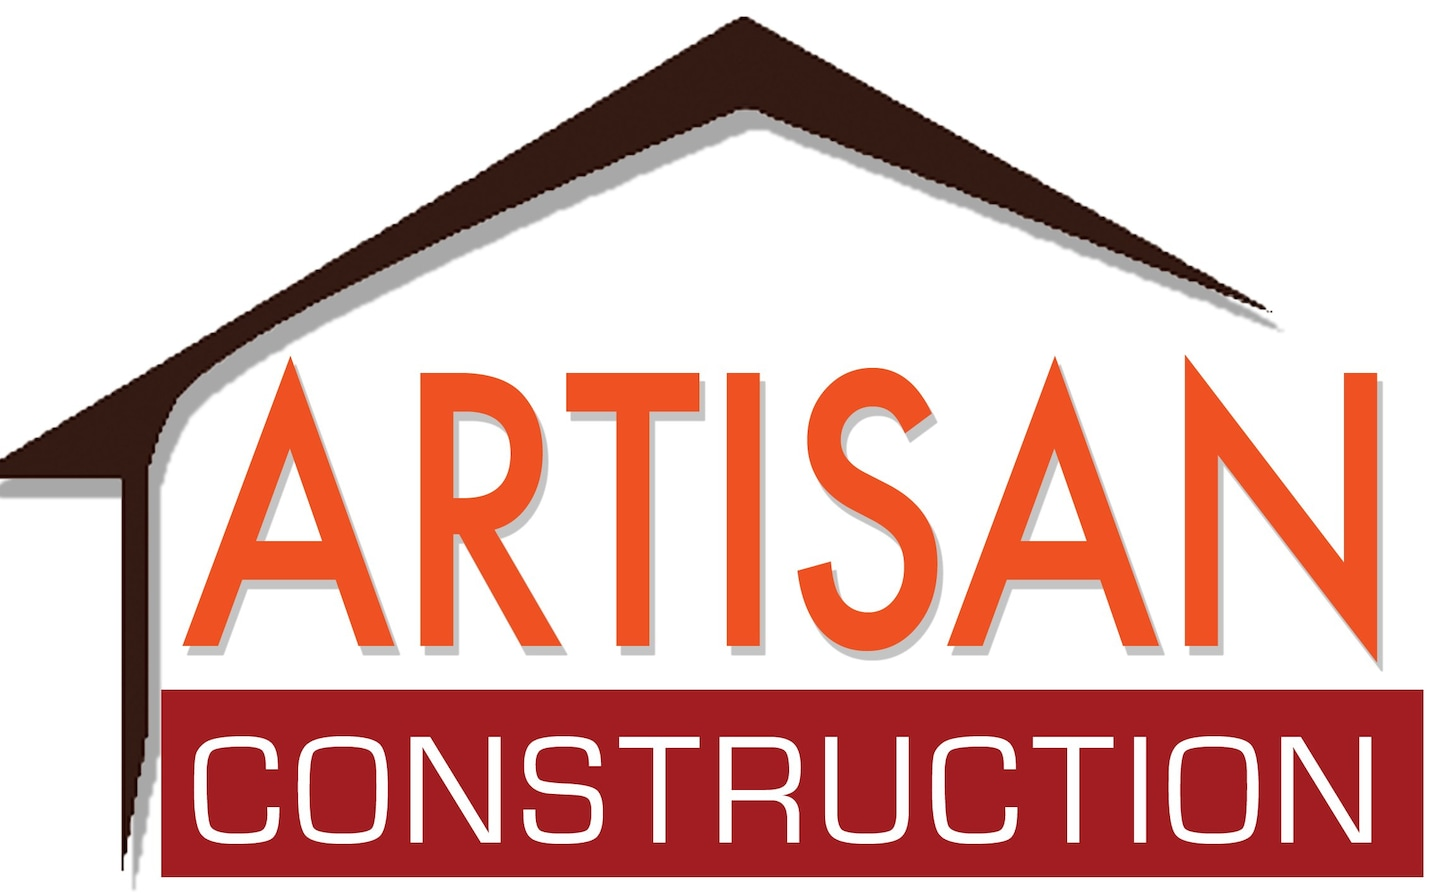 Artisan Construction